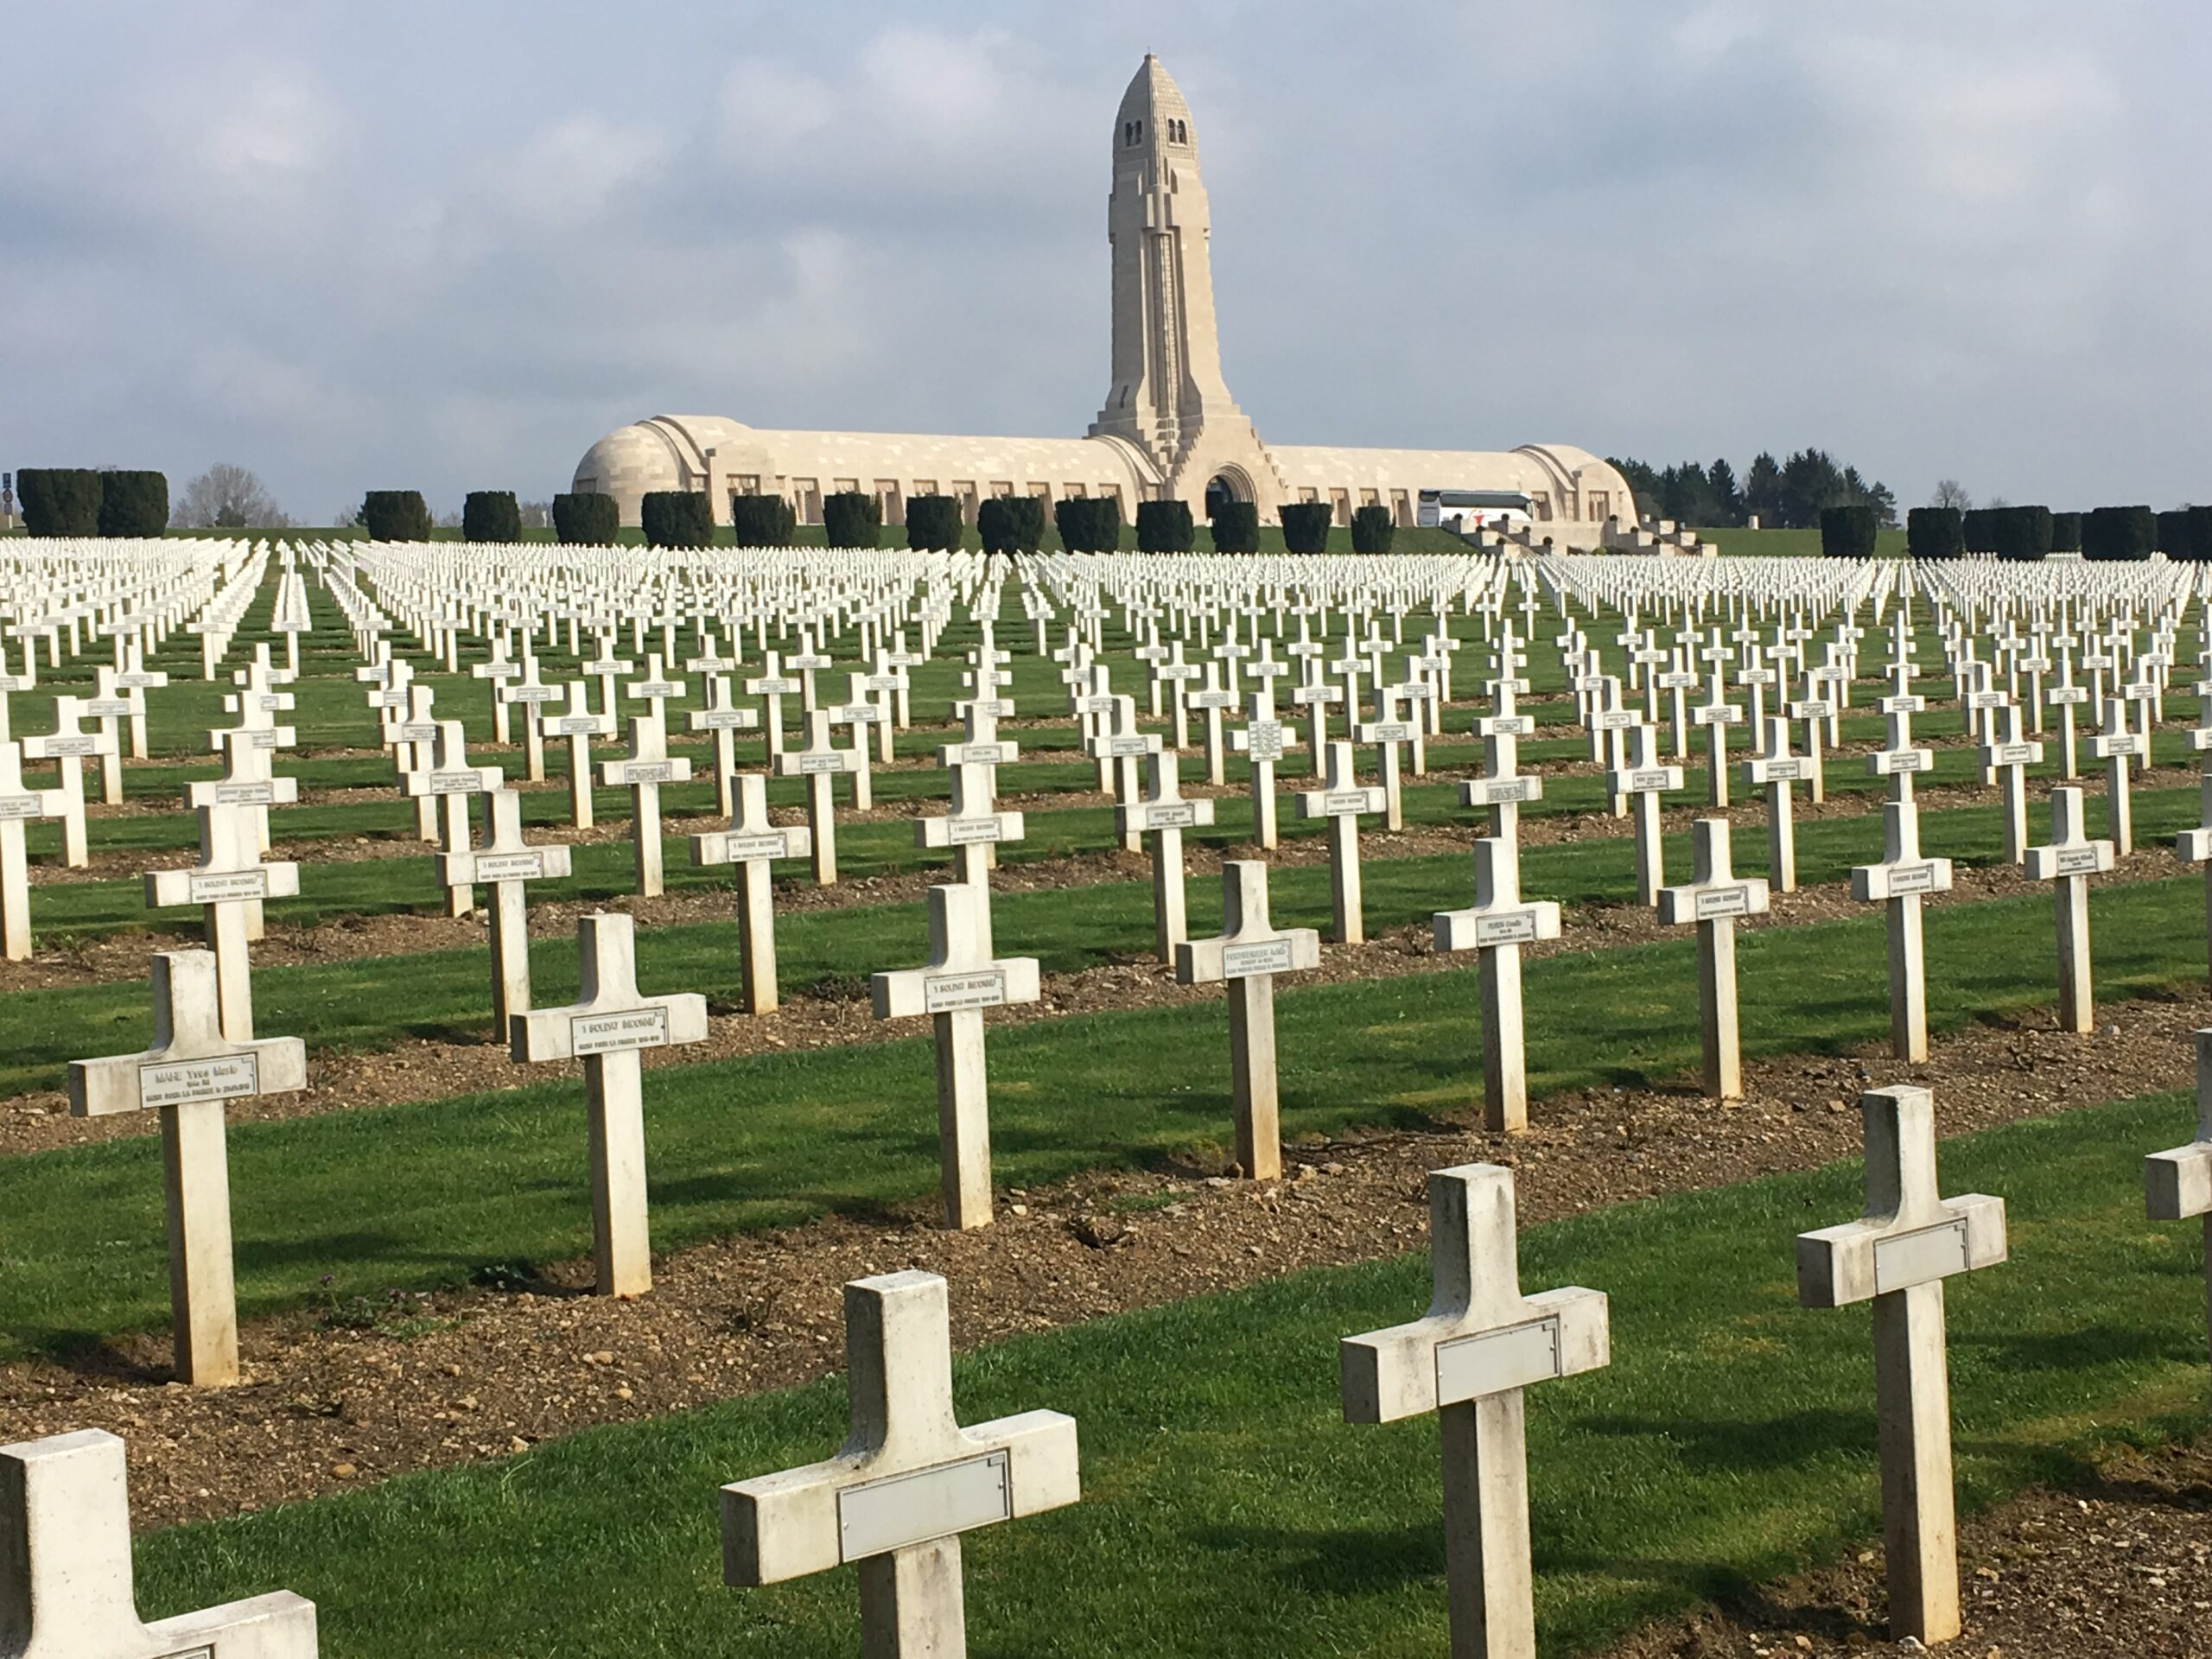 Battle-scarred Verdun: the saddest city in France